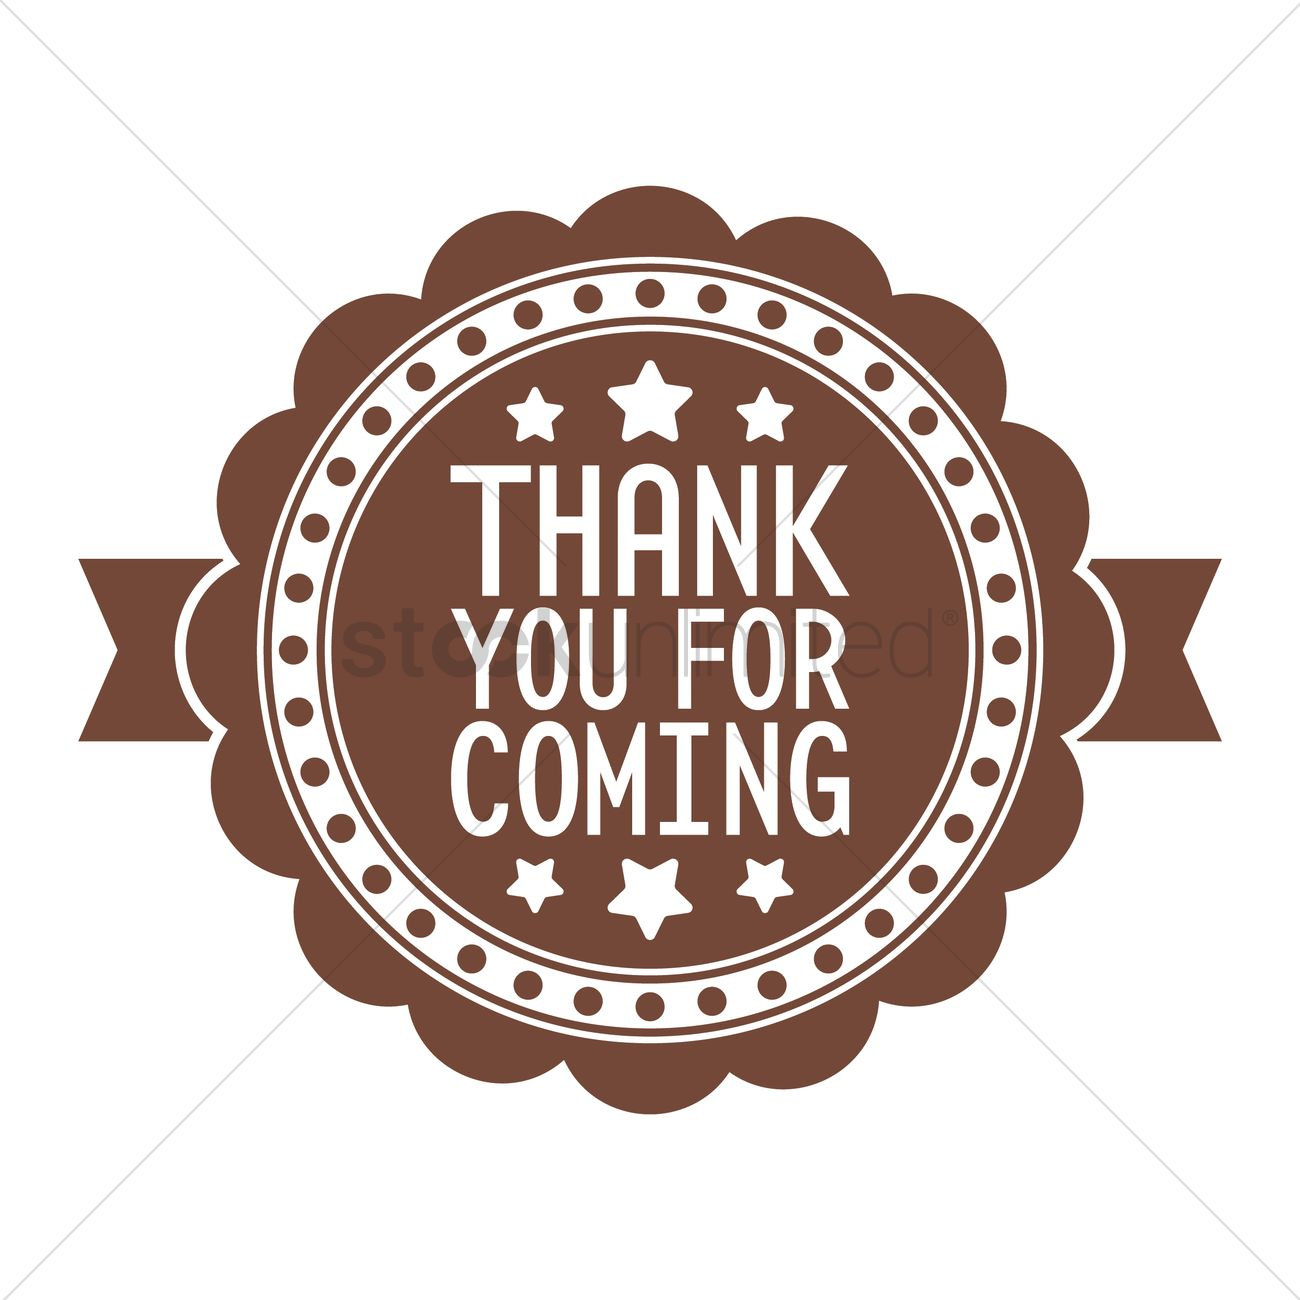 Thank you for coming label Vector Image - 1708127